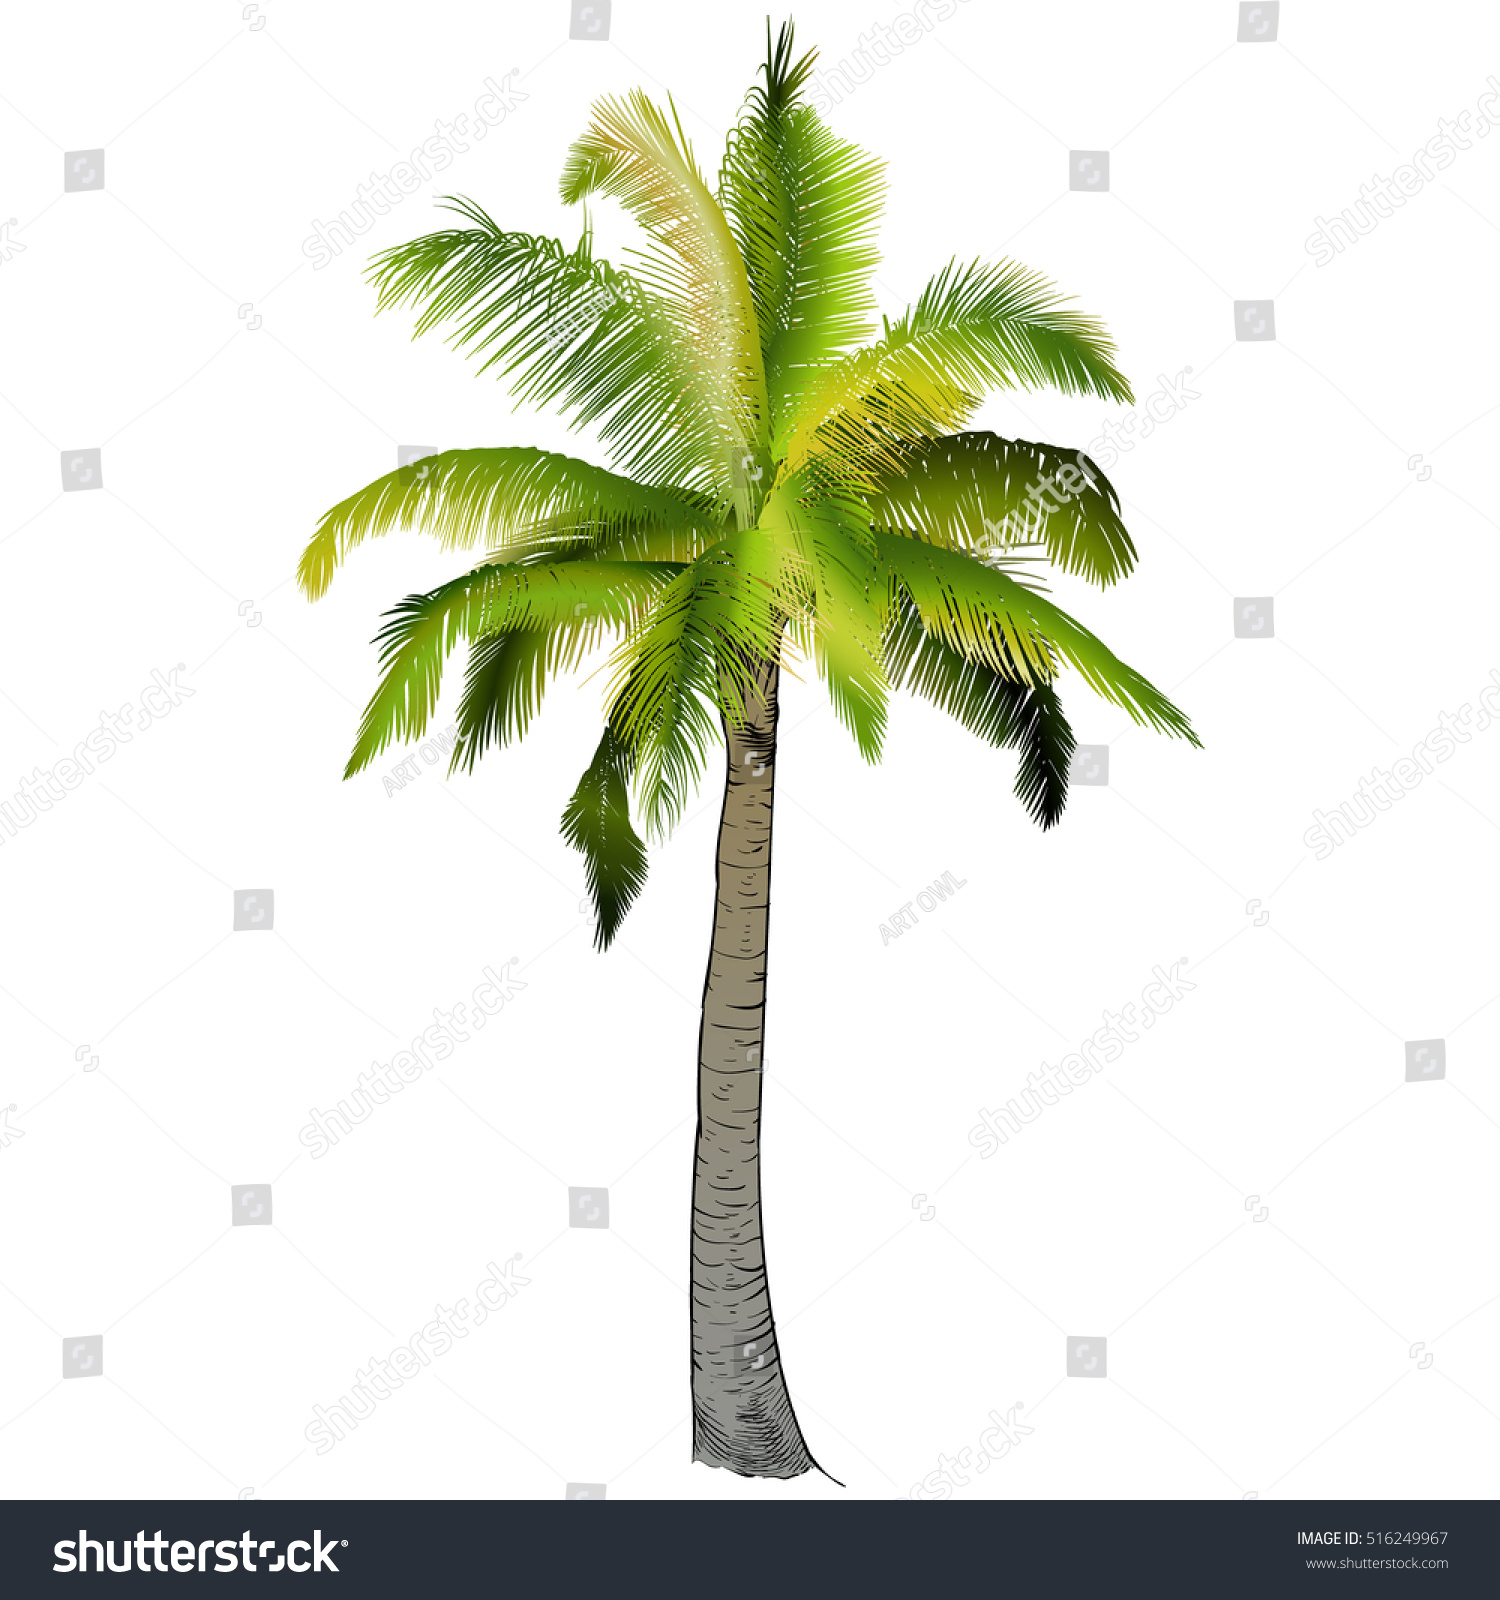 Uncategorized Drawing Palm Trees vector illustration on graphic tablet hand stock 516249967 a drawing palm tree branches of palm